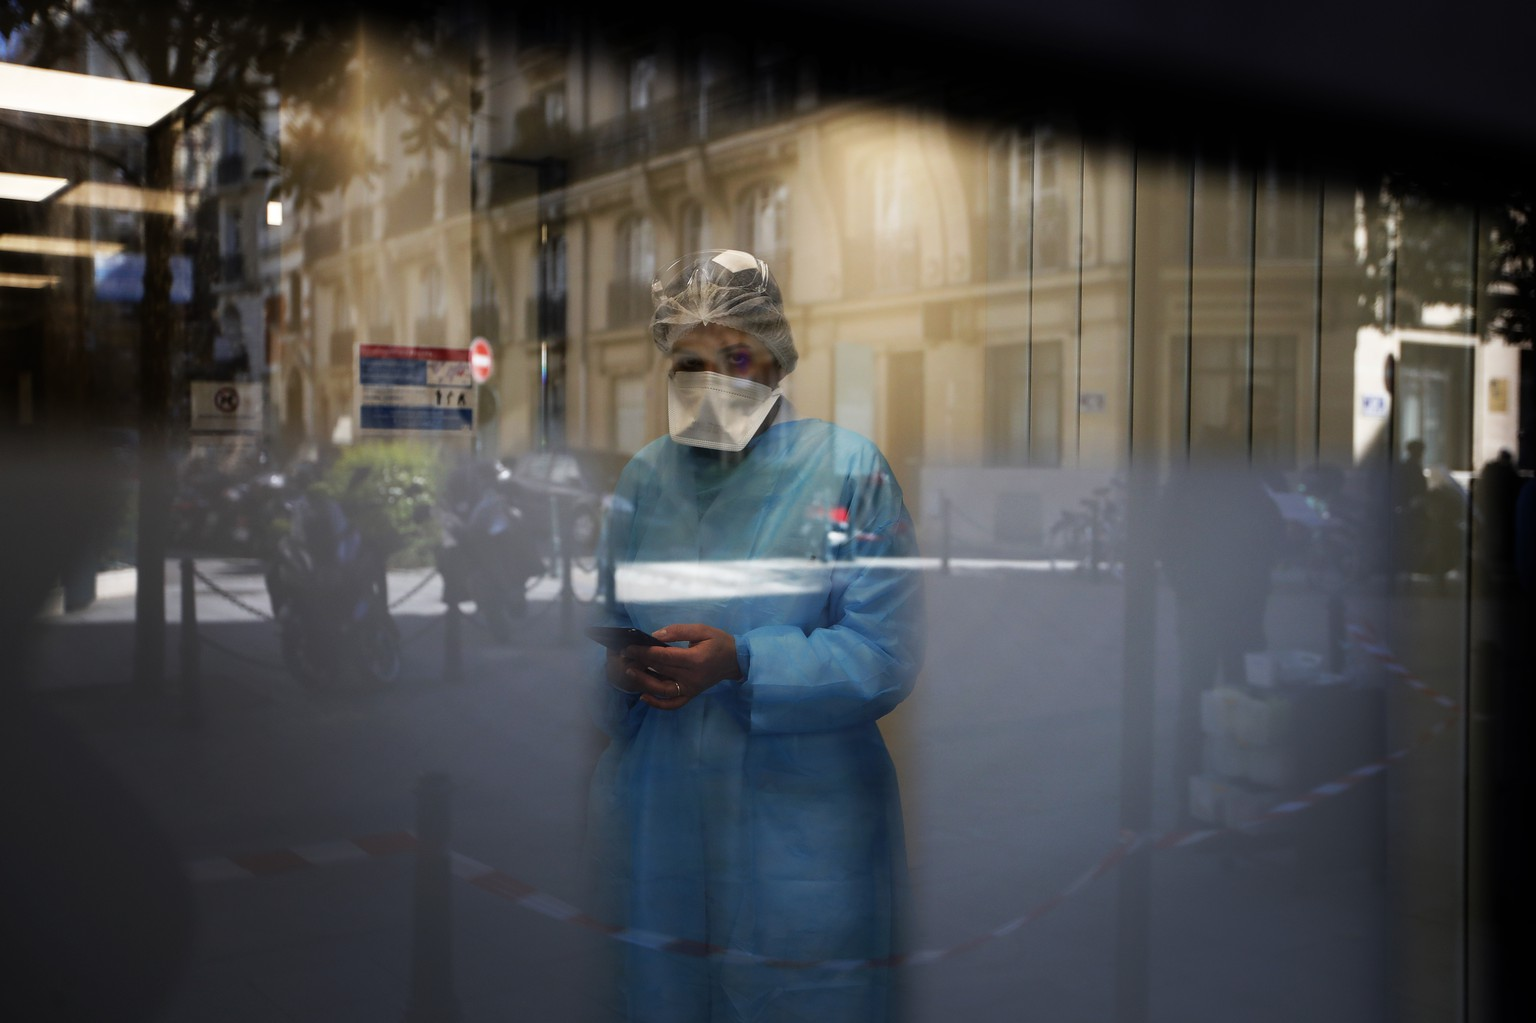 Biologist doctor Caroline Gutsmuth gives a phone call in medical biology laboratory who opened a coronavirus drive-thru testing site, in Neuilly-sur-Seine, near Paris, March 23, 2020. (AP Photo/Christophe Ena)